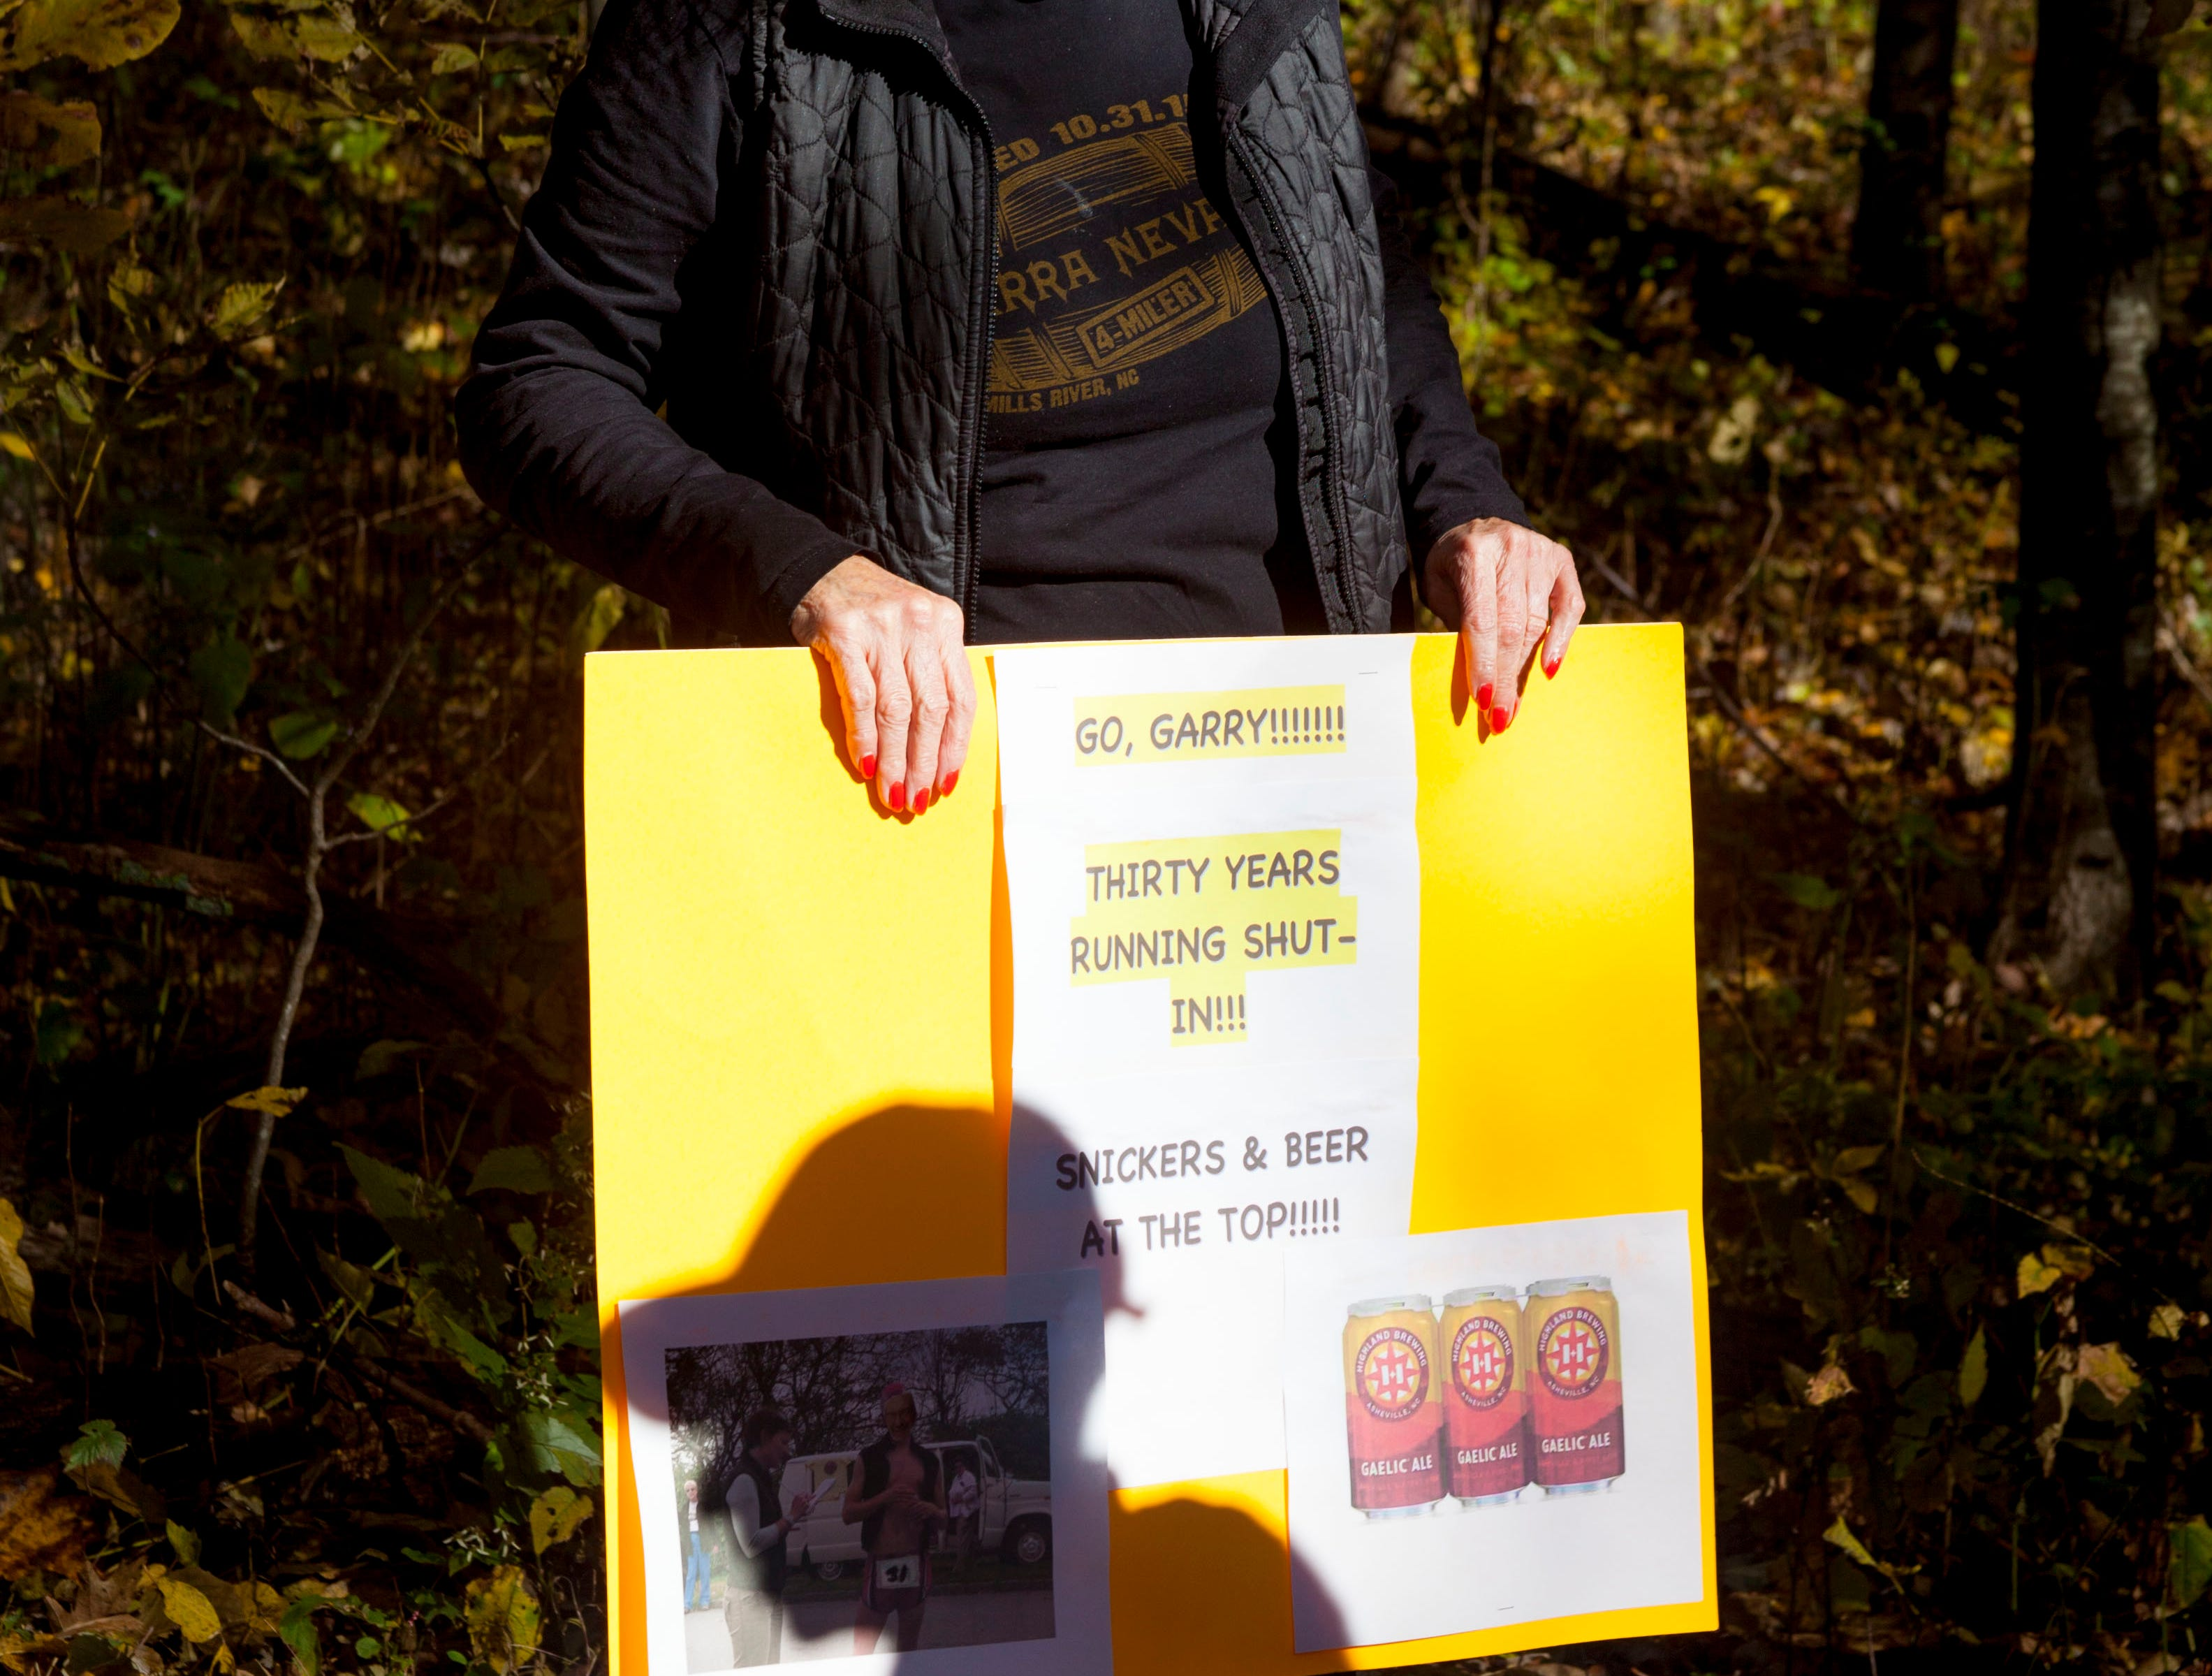 "Gail Sherman holds a sign of support for her husband Garry, who has raced in the past 30 Shut-In Ridge Trail Races. The Shut-In Ridge Trail Race for 2018 took place Saturday, Nov. 3. The race along the Blue Ridge Parkway began at the North Carolina Arboretum and ended at Mount Pisgah. The 17.8-mile route is touted as ""one of Asheville's most iconic and grueling trails."" Learn more at shutintrailrace.com."